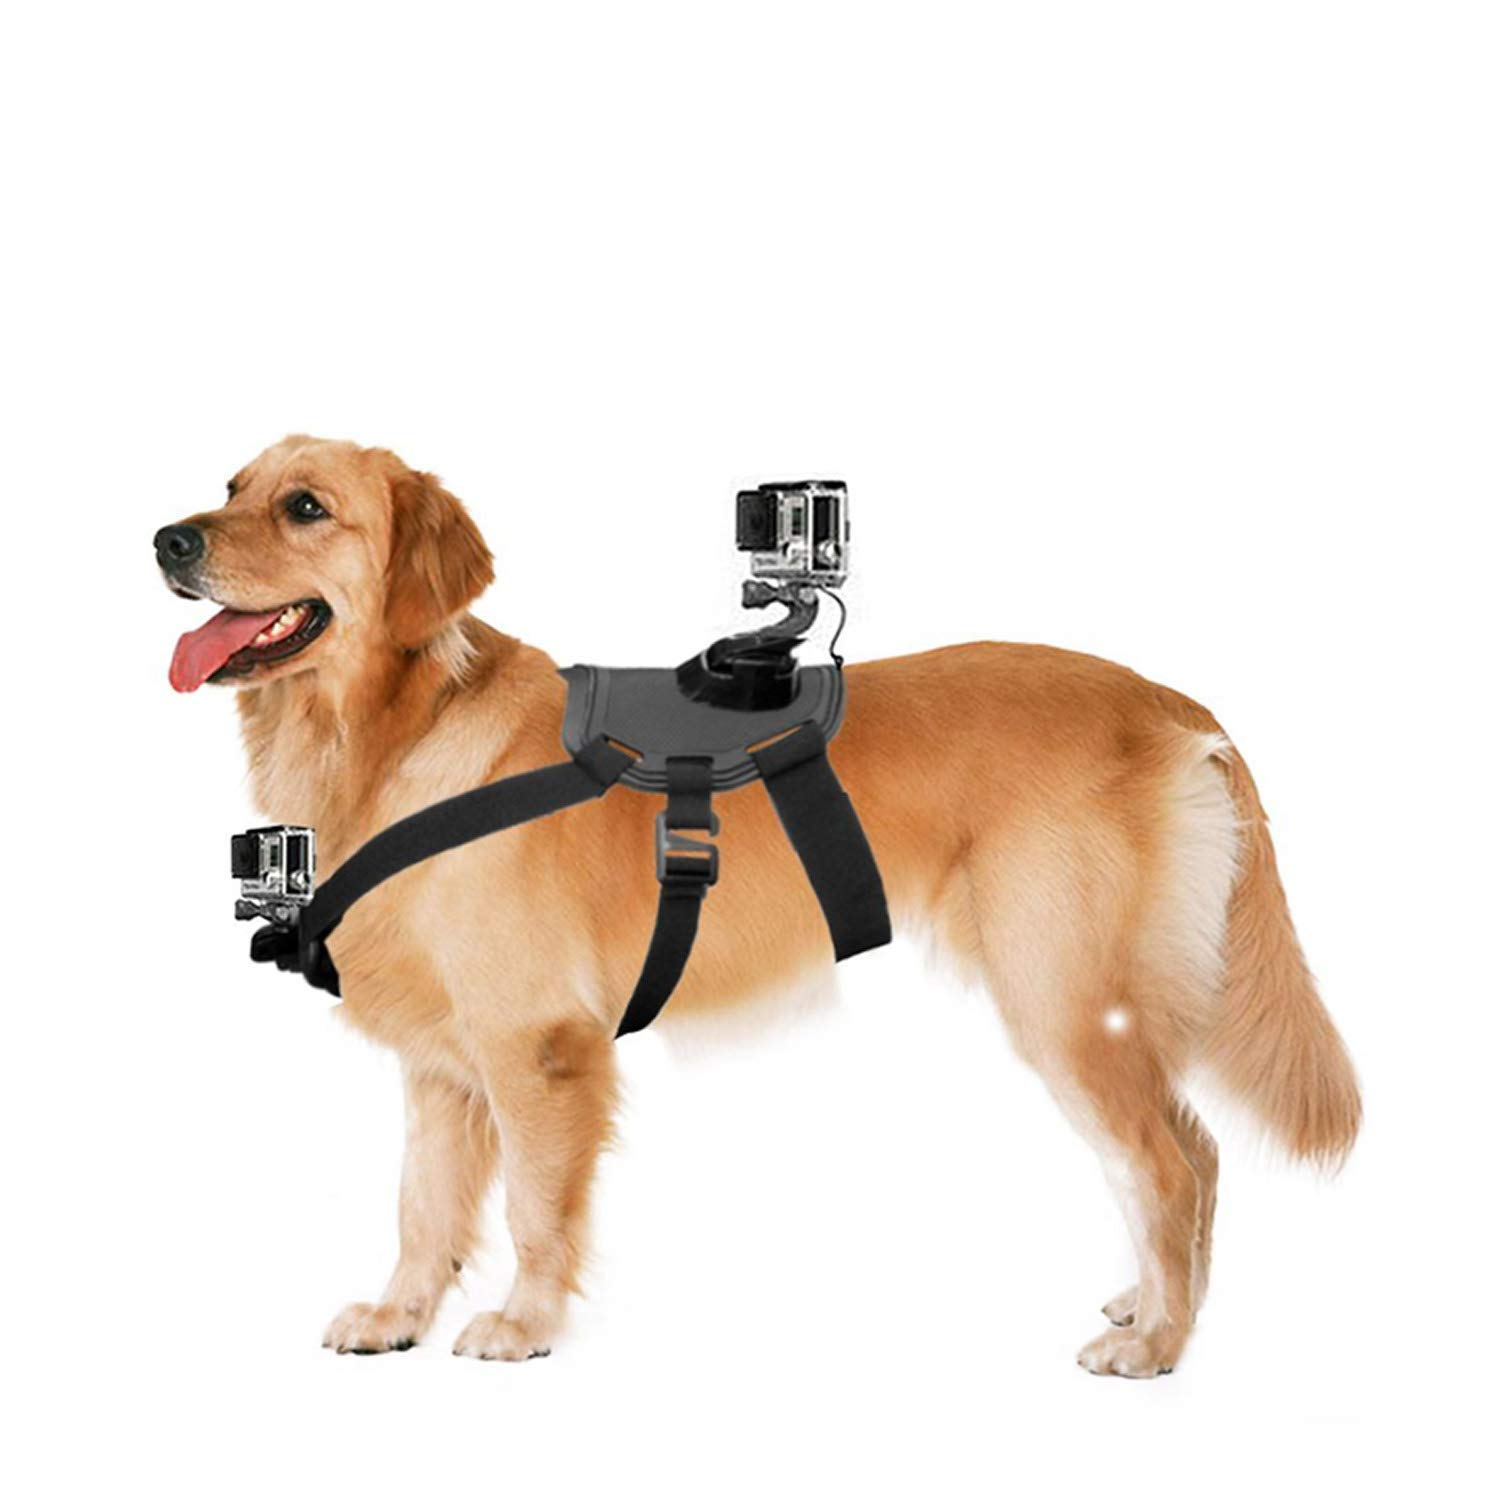 NEWTTY KAY Dog Harness Fetch Strap Belt Back Chest Mount with Adjustable Buckle Screw for GoPro Hero 7/6/5/5 Session/4 Session/4/3+/3/2/1 by NEWTTY KAY